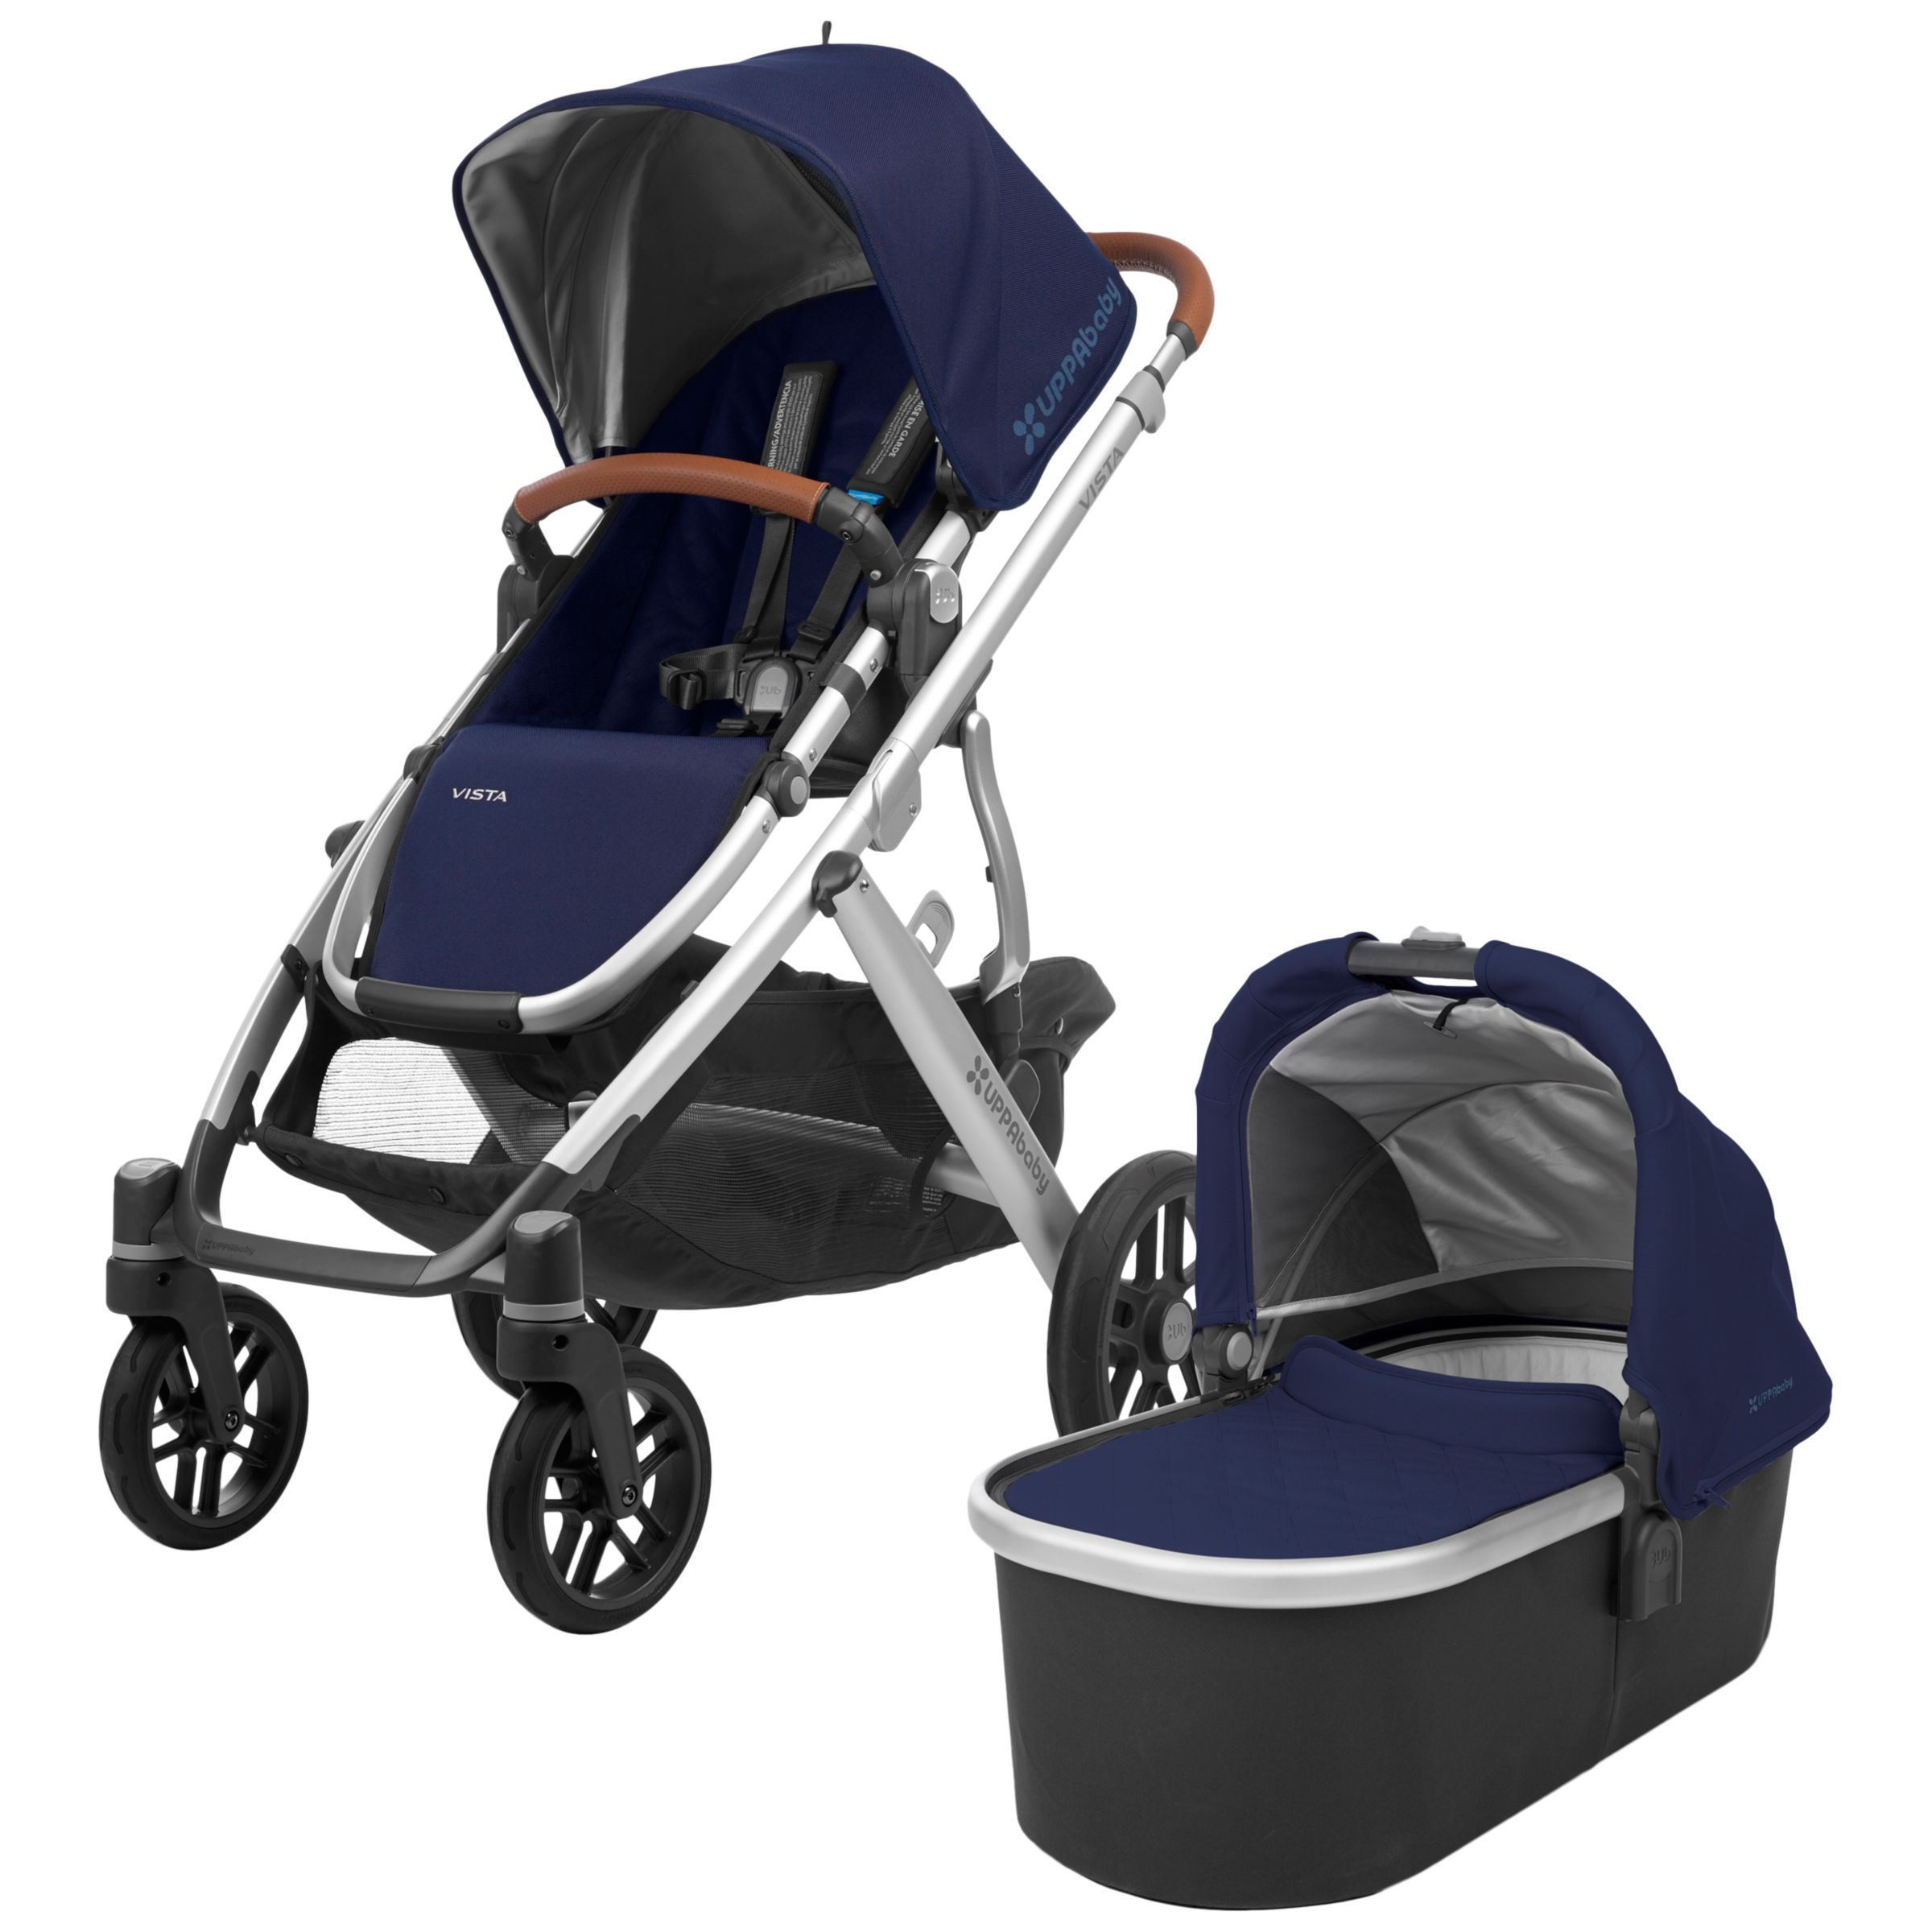 UPPAbaby Vista Pushchair and Carrycot, Taylor Vista